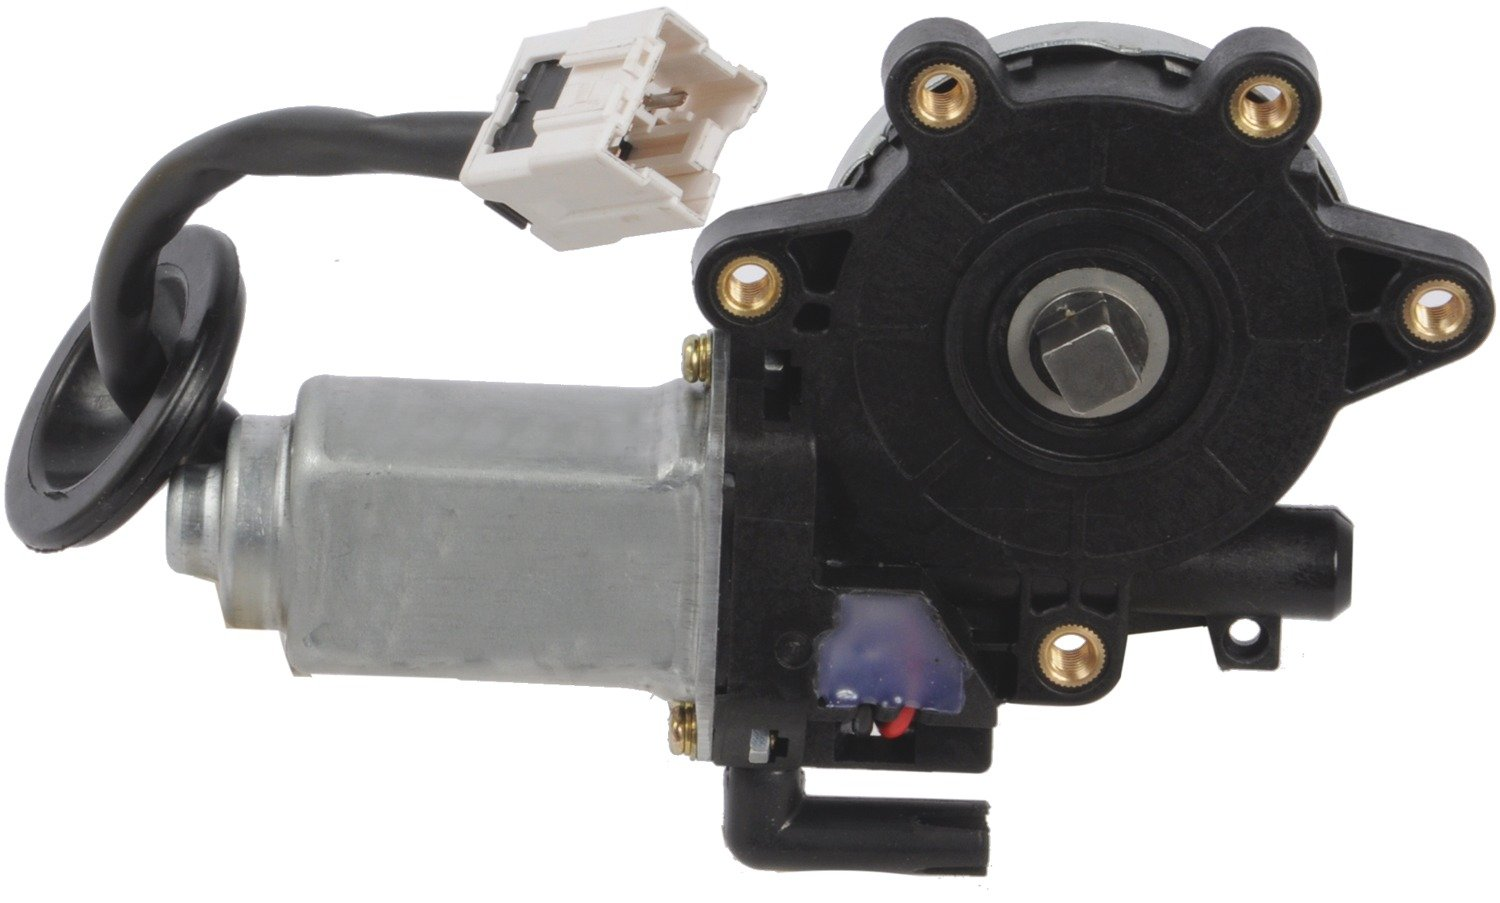 Cardone Select 82-1377 New Window Lift Motor by Cardone Select